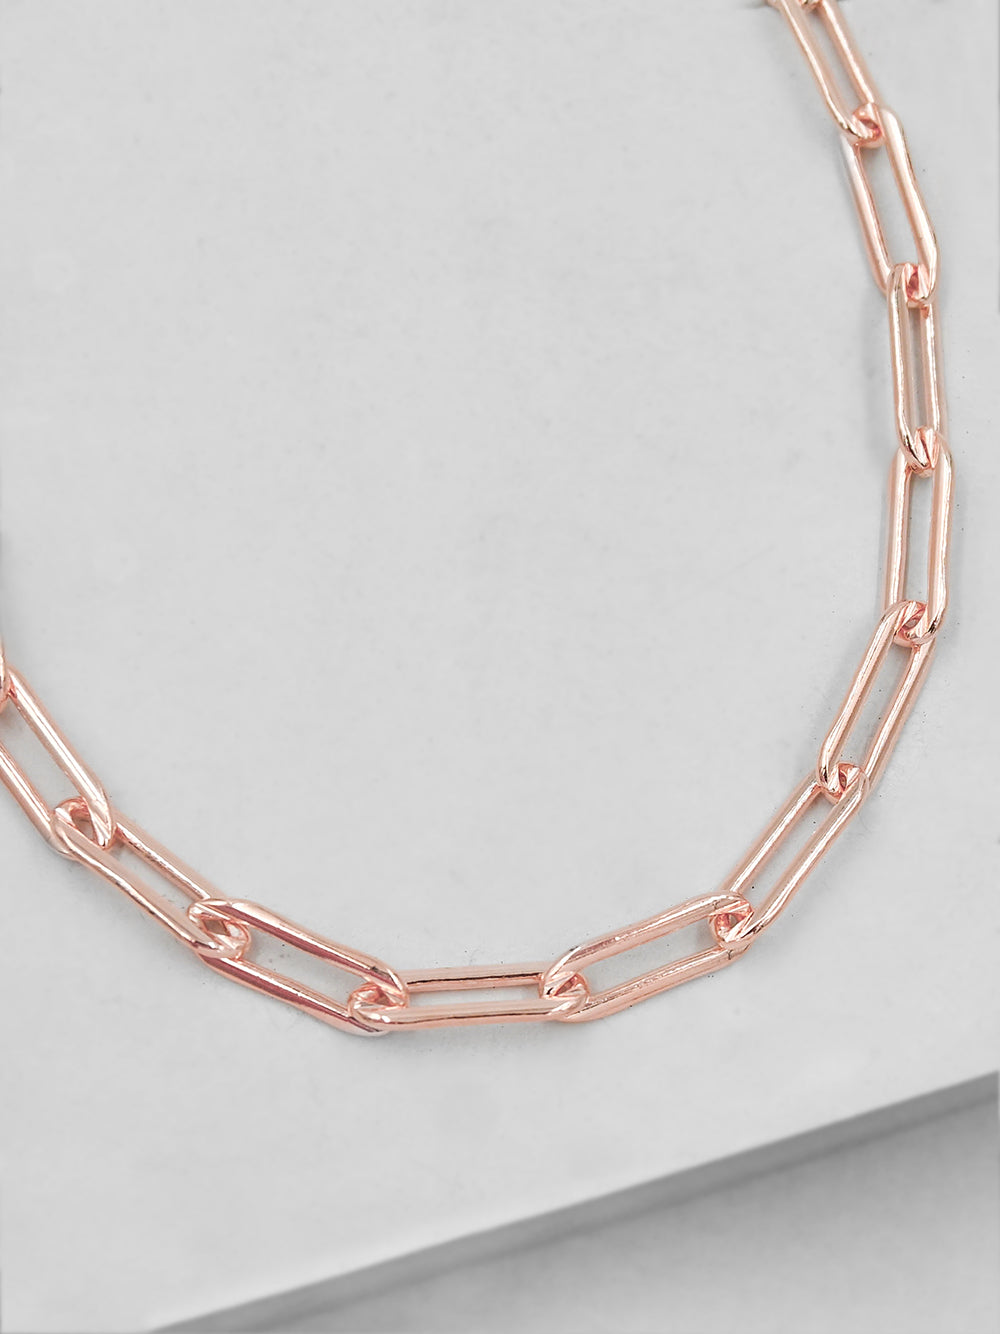 Large Paperclip Rose Gold  Necklace  by The Faint Hearted Jewelry